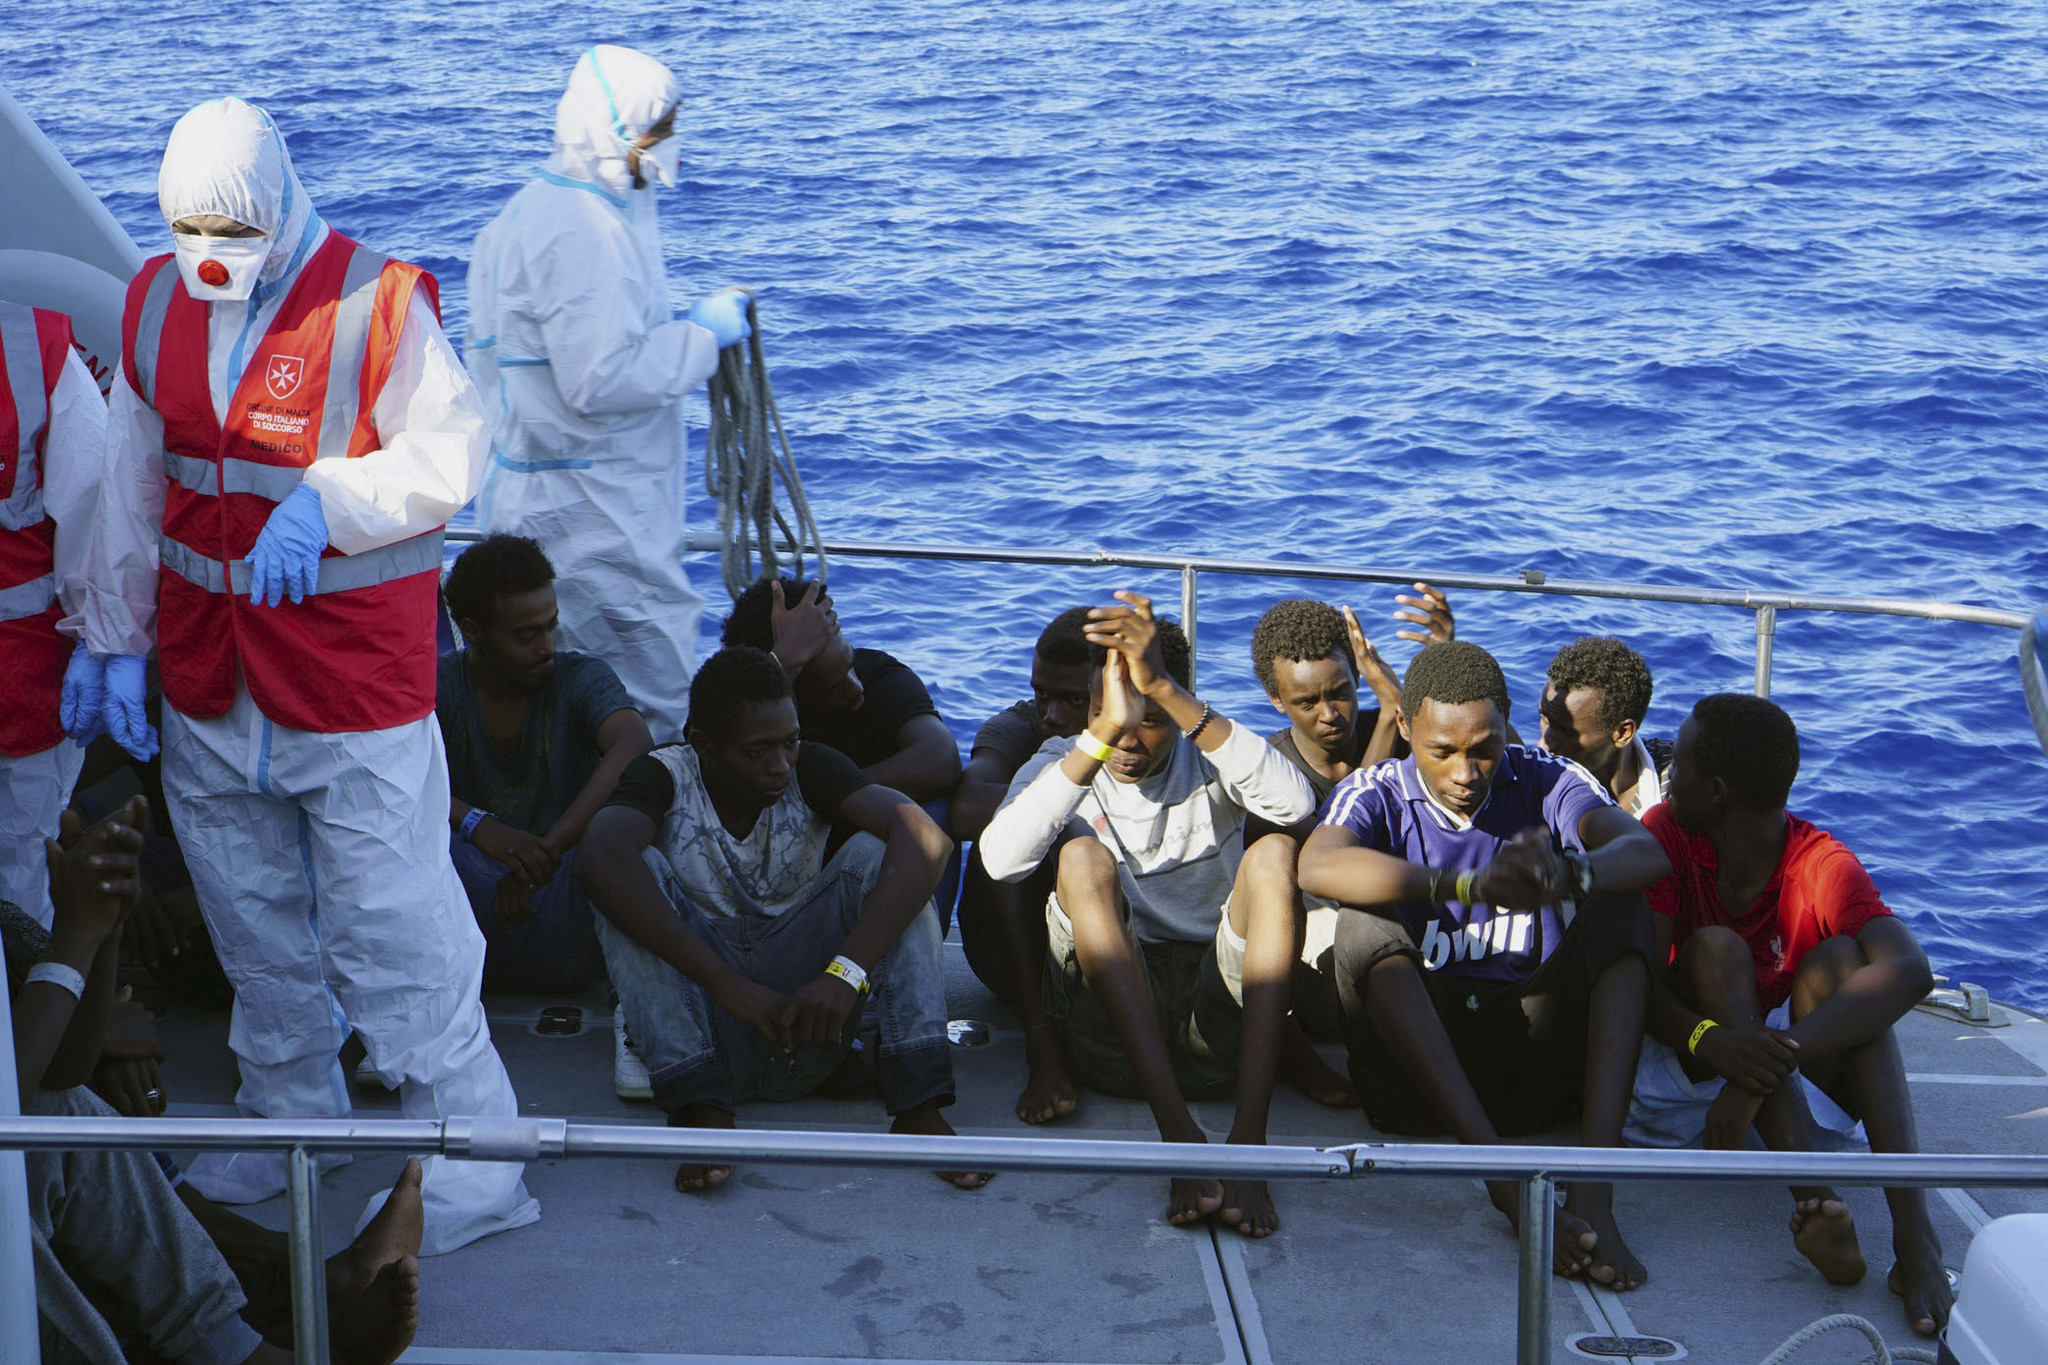 Italy's anti-immigrant minister unwillingly takes in 27 rescued migrant youths